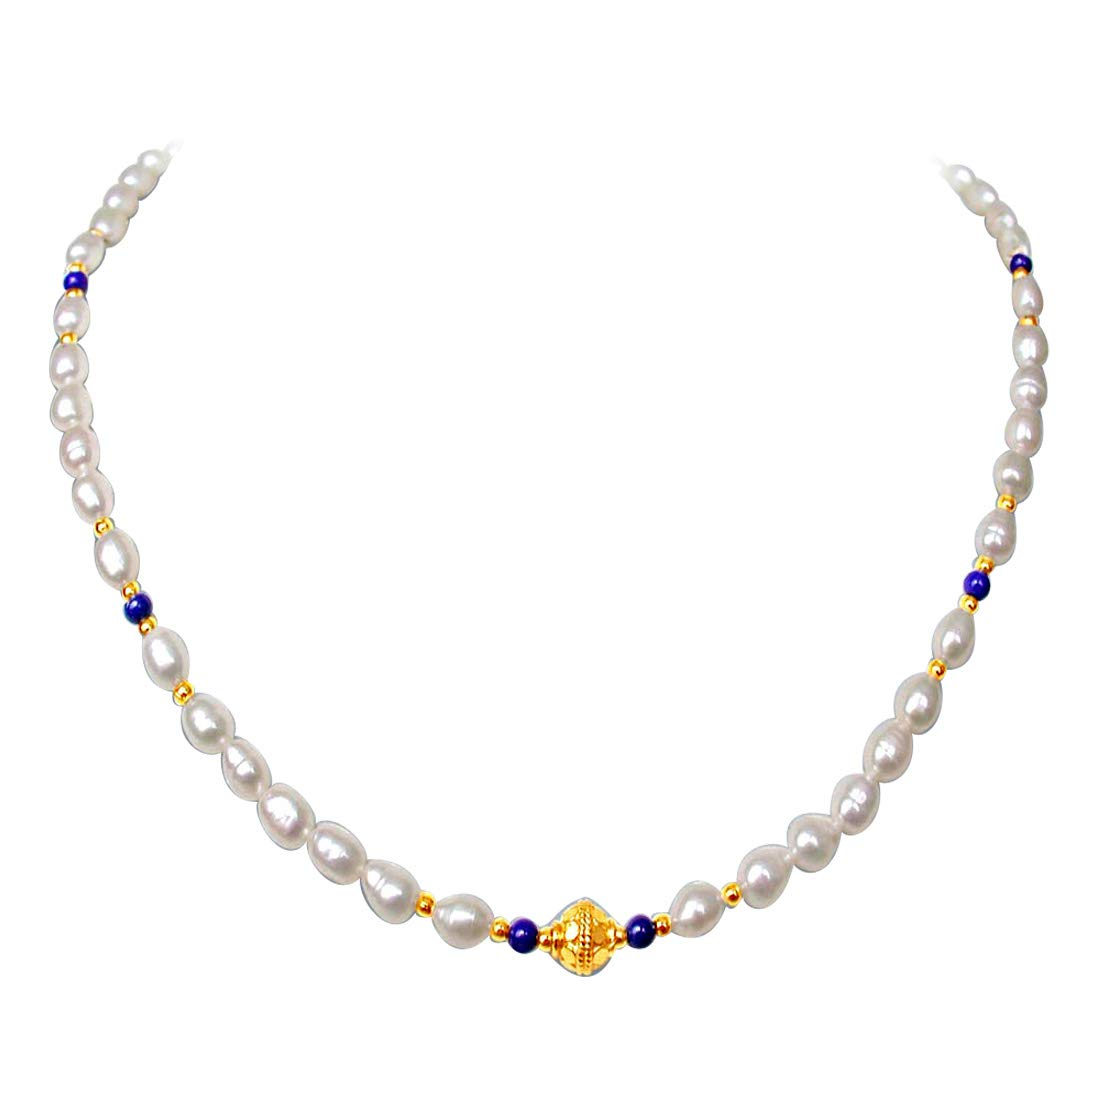 Ethereal - Single Line Real Rice Pearl & Blue Lapiz Beads Necklace for Women (SN238)